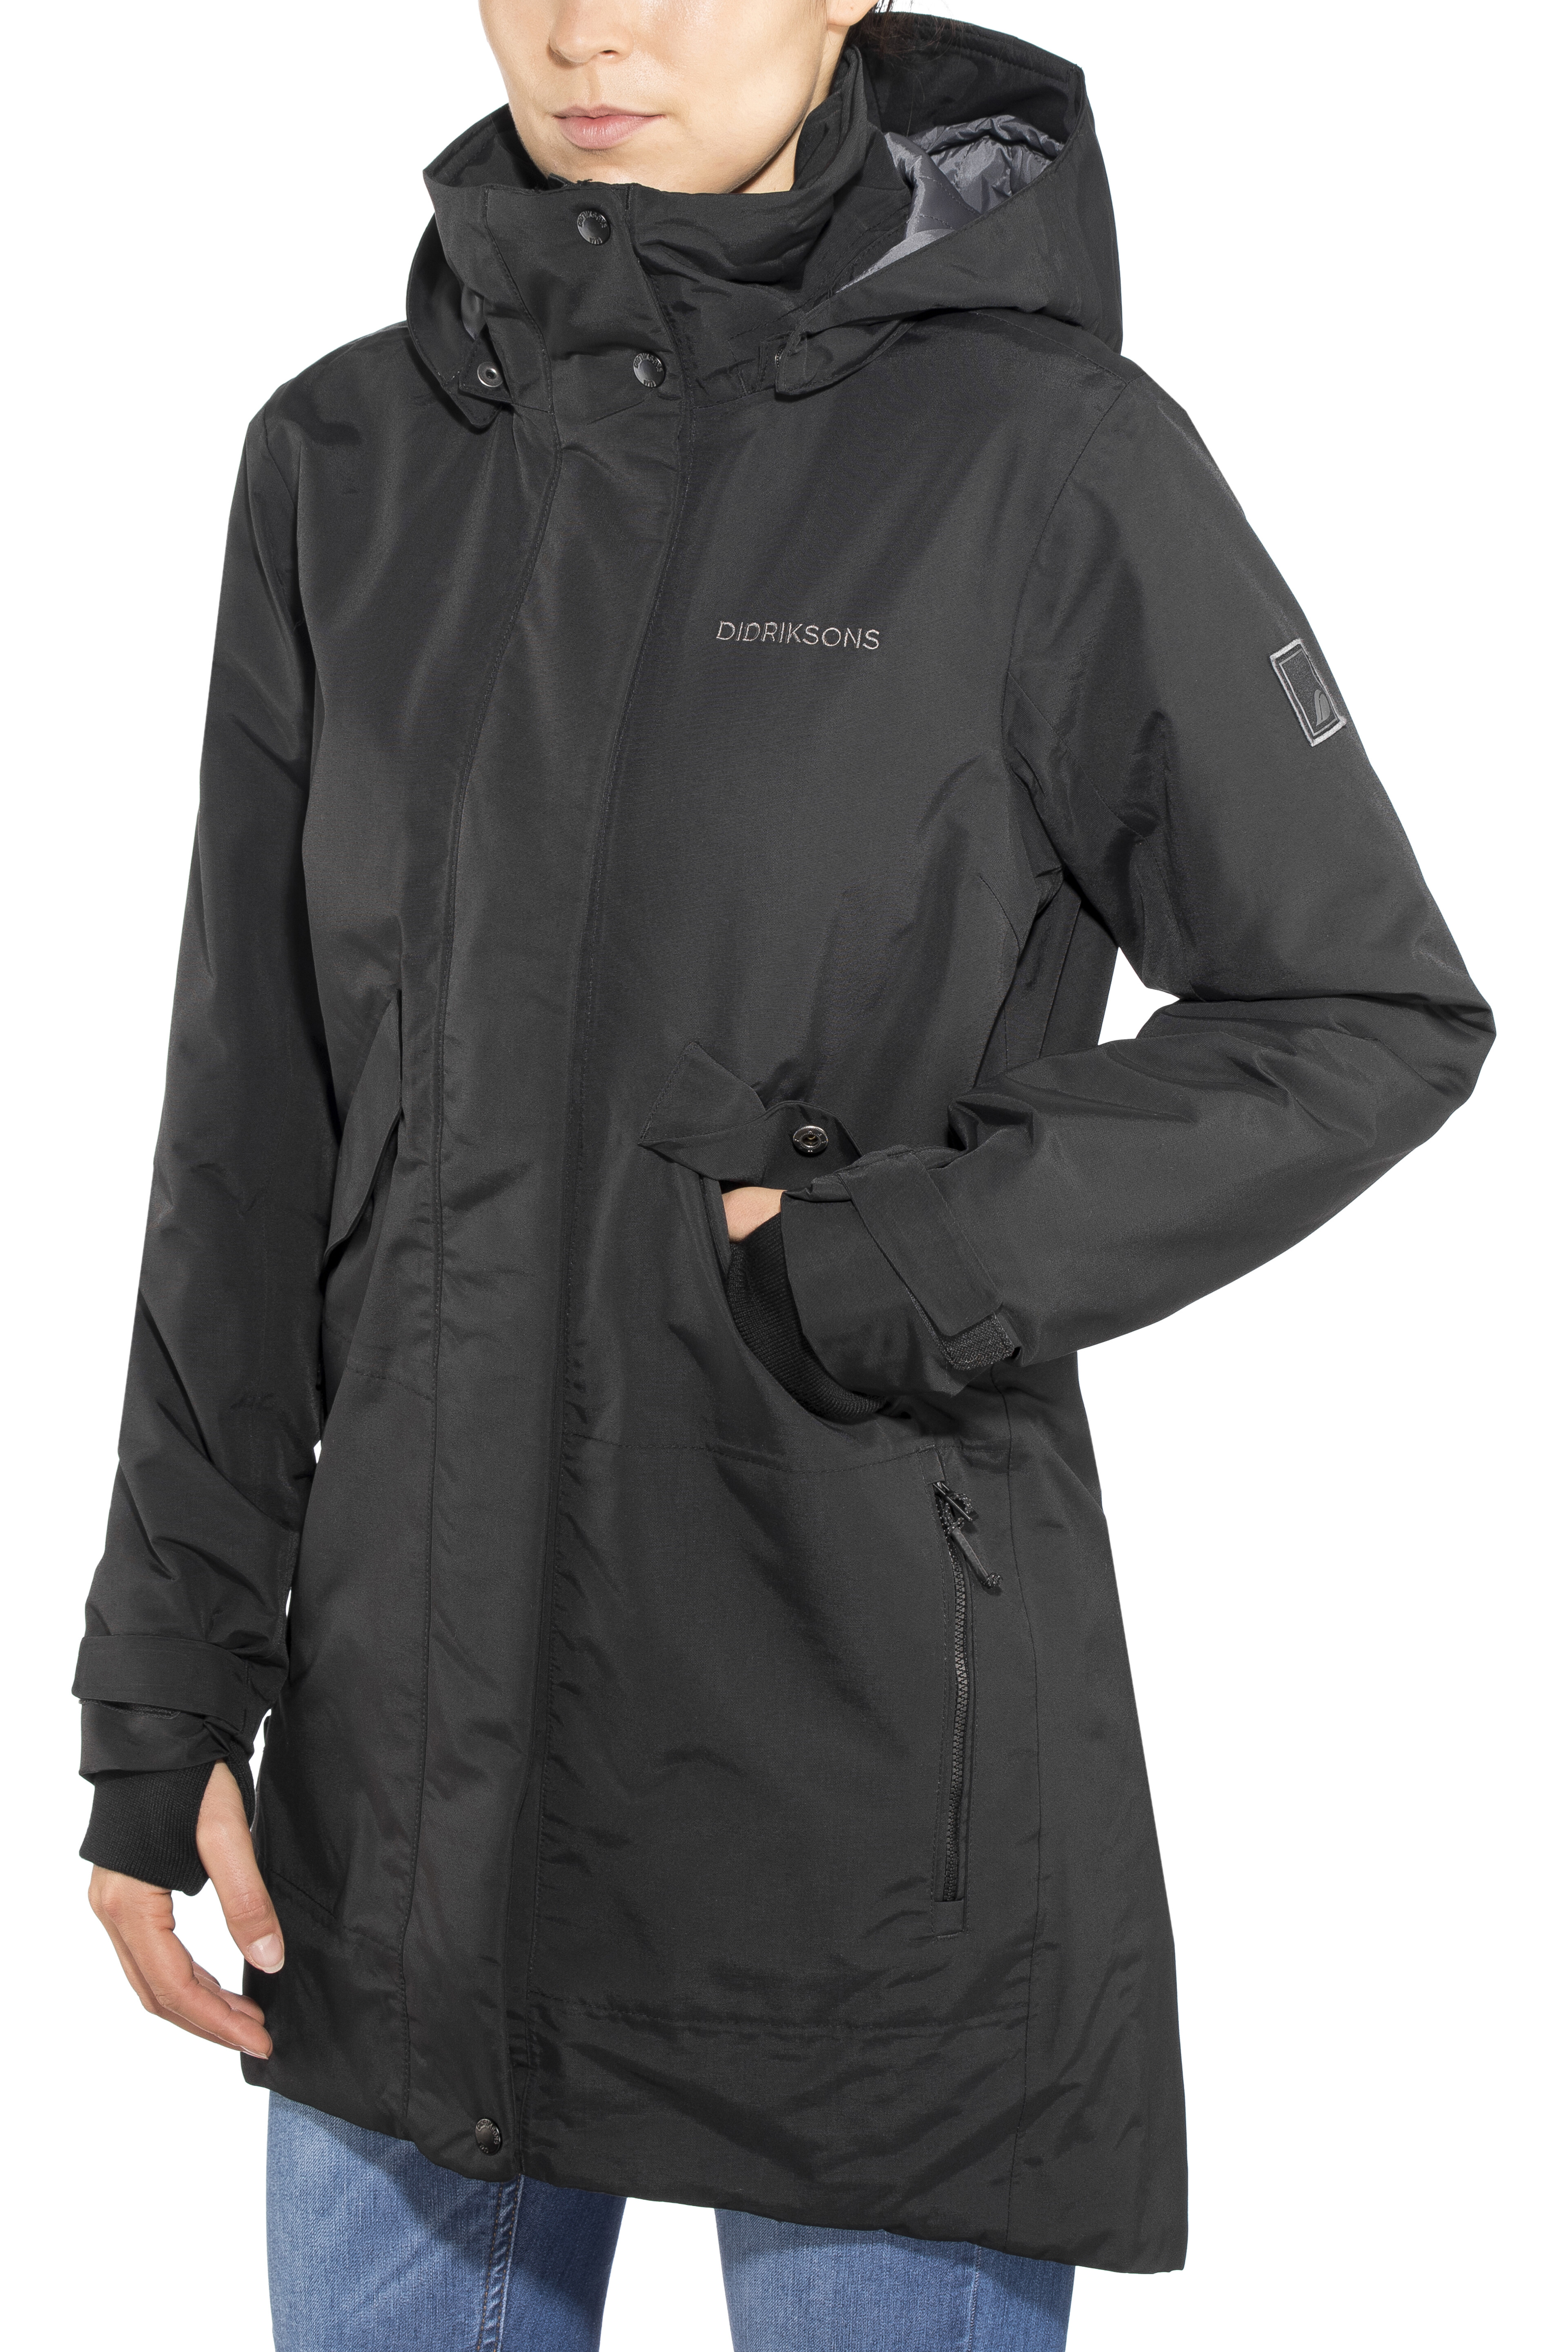 37033abe Didriksons 1913 Tanja Parka Women black at Addnature.co.uk